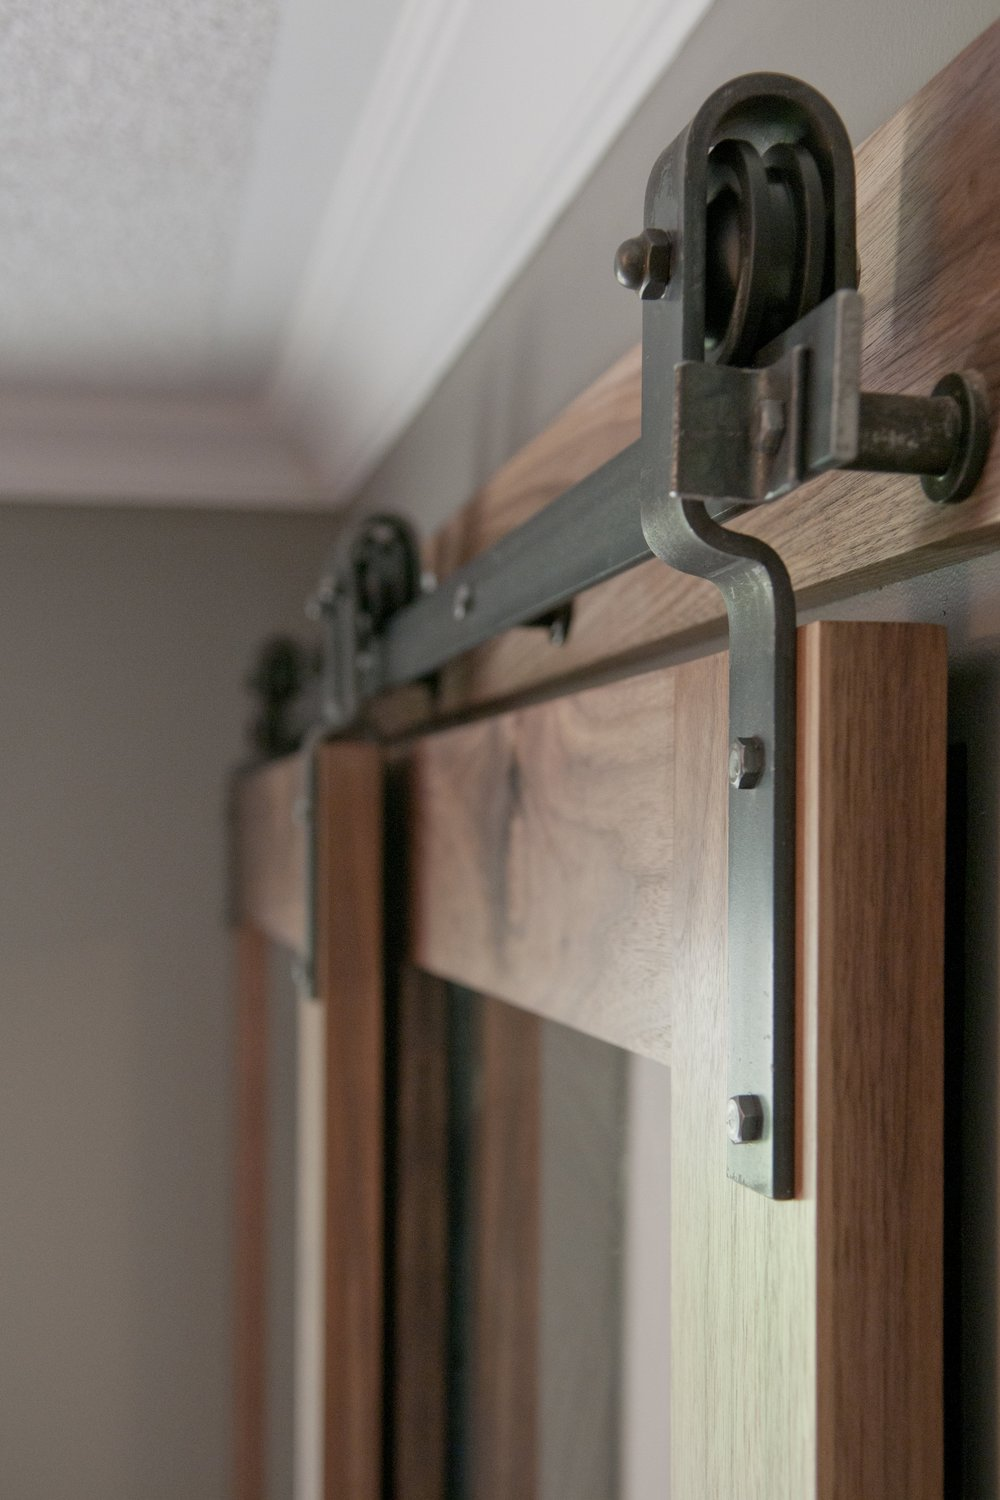 Sliding Barn Door Hardware | Bypass Barn Doors | Bypass Sliding Barn Doors